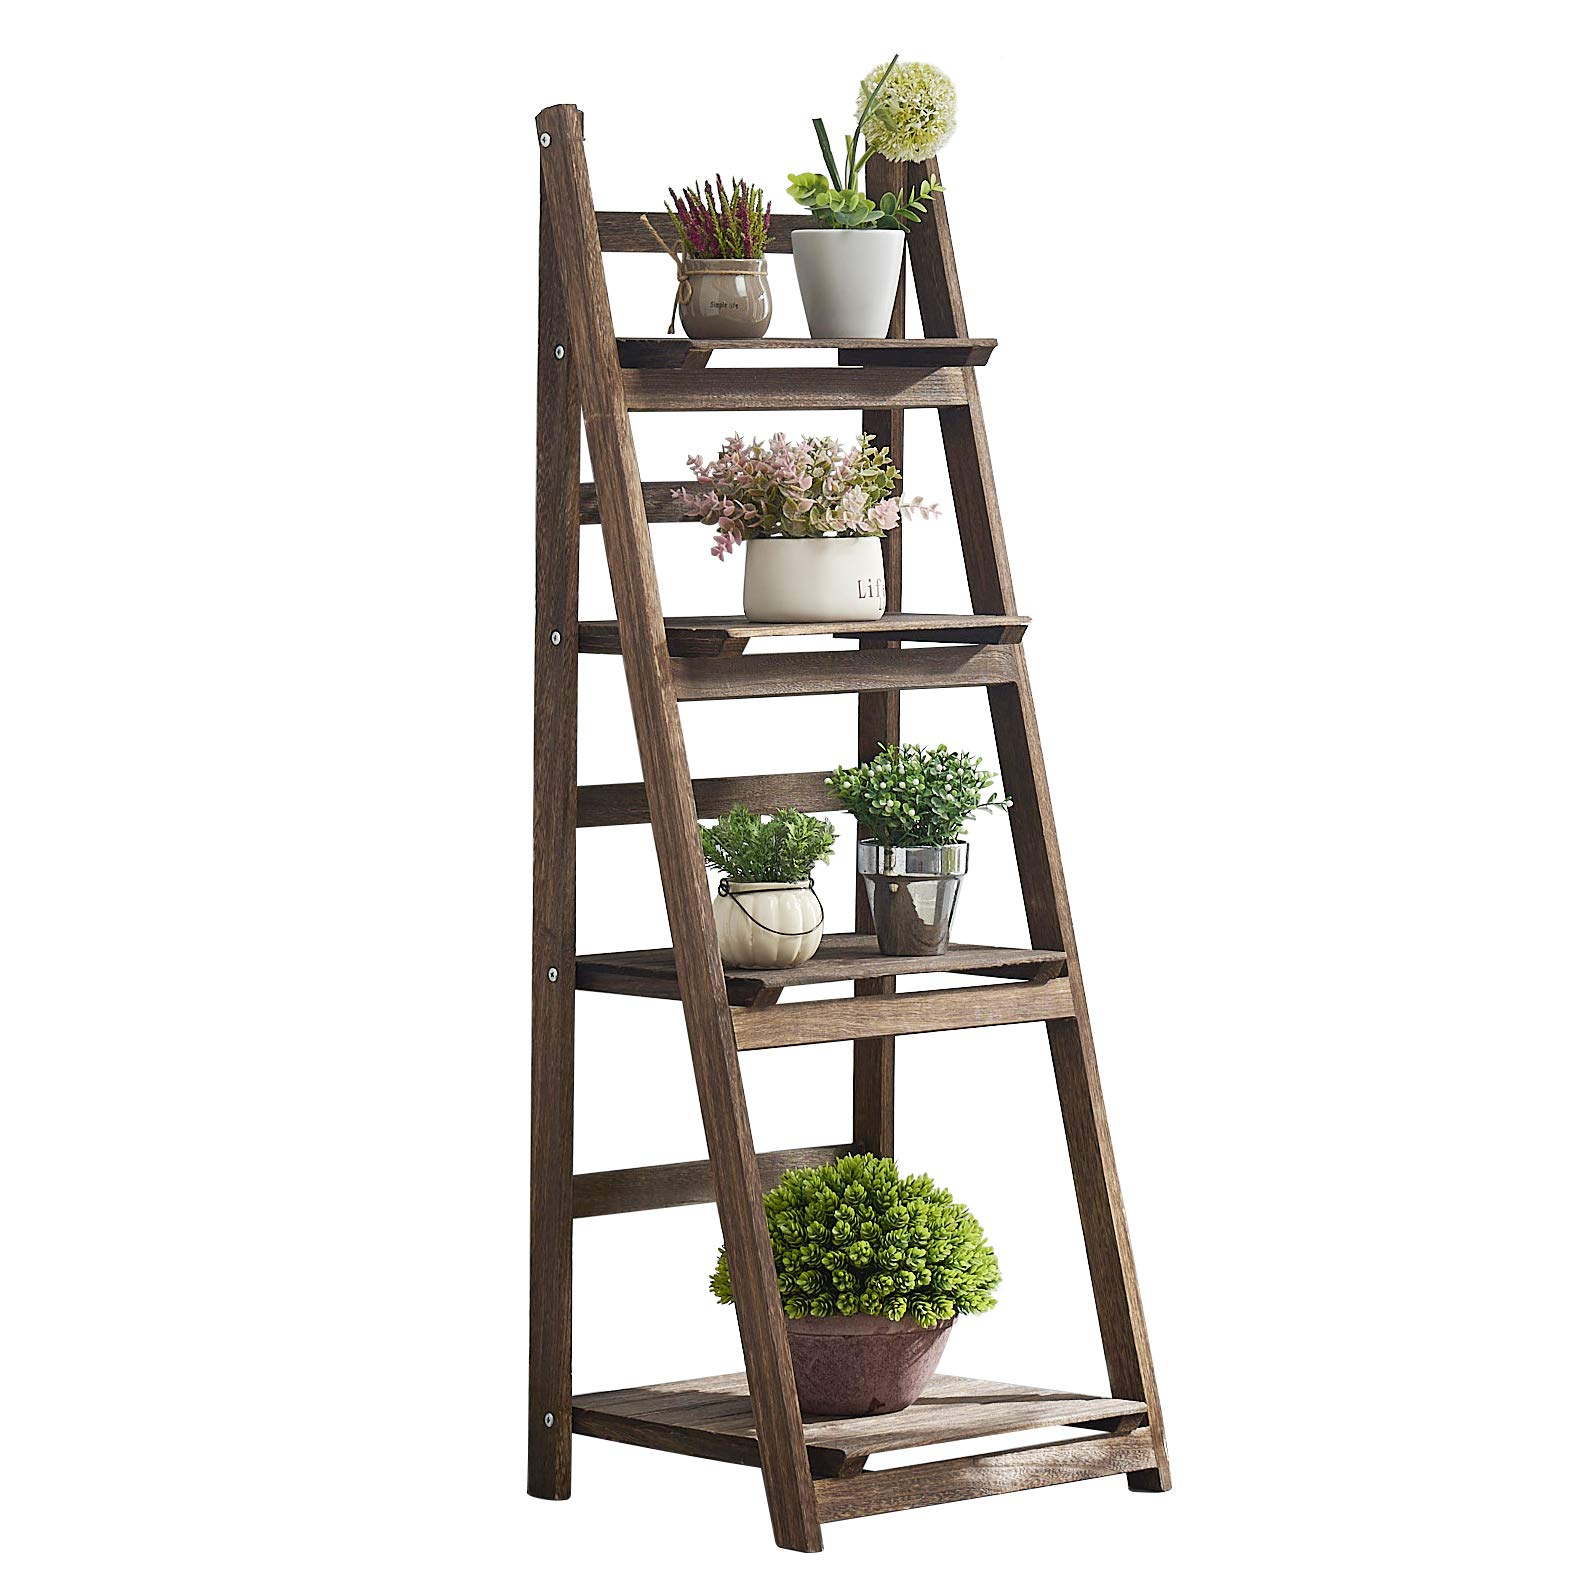 RHF Foldable Ladder Shelf,Plant Stand,Indoor Flower Pot Stand,Flower Pot Ladder,Folding A Framde Display Shelf,Free Standing, Patio Rustic Wood Stand with Shelves,4 Tier Stand Outdoor,Pot Rack by Rose Home Fashion